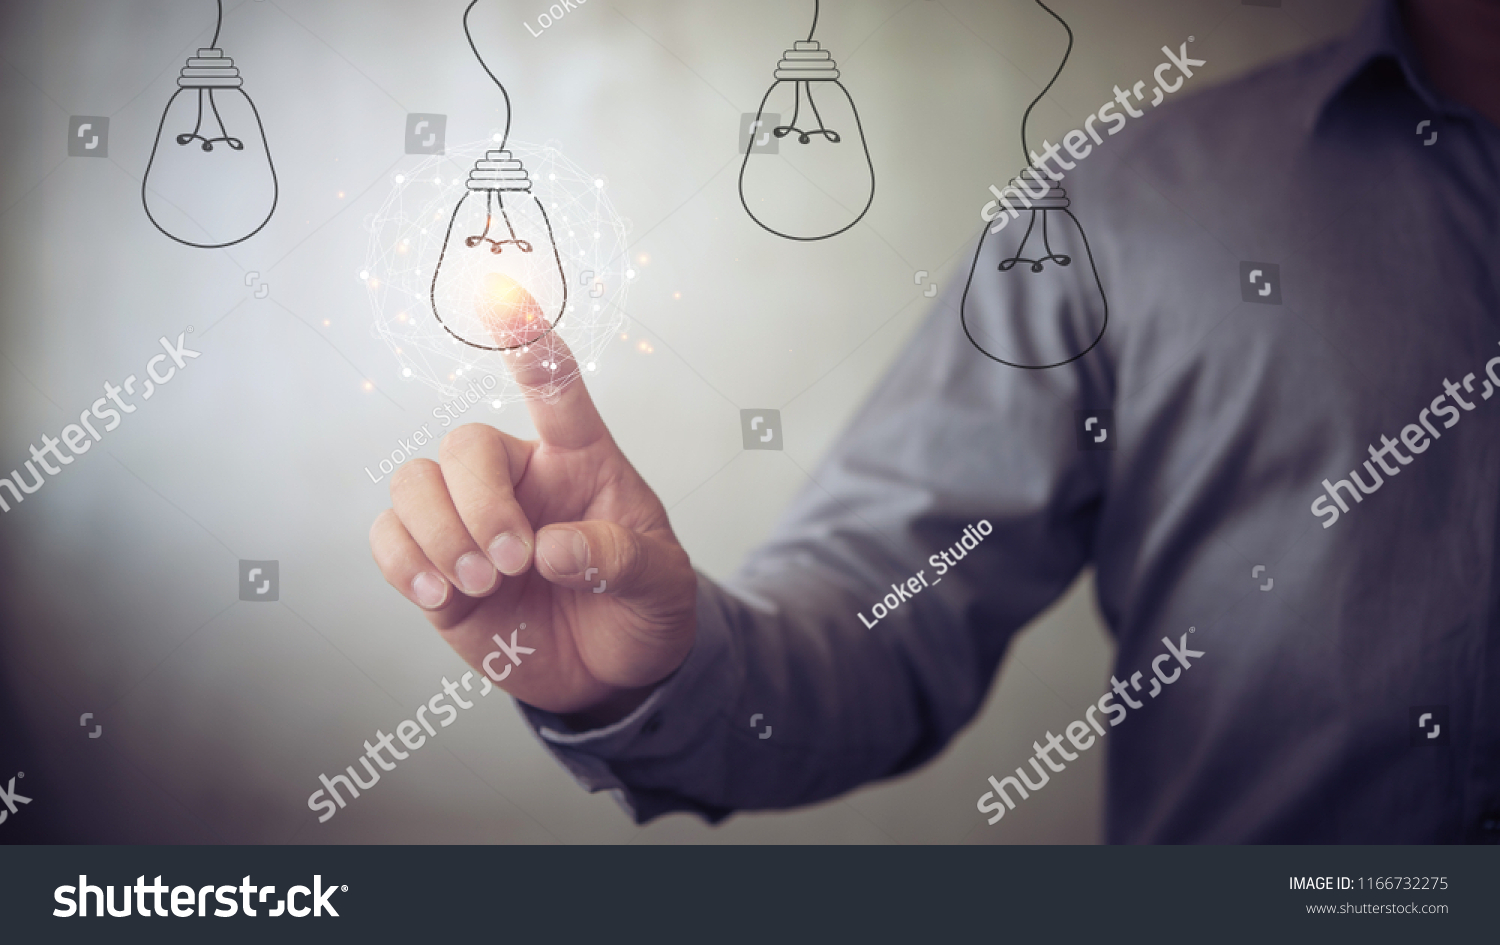 new idea creative idea.Concept of idea and innovation.Hand touch Light bulb #1166732275